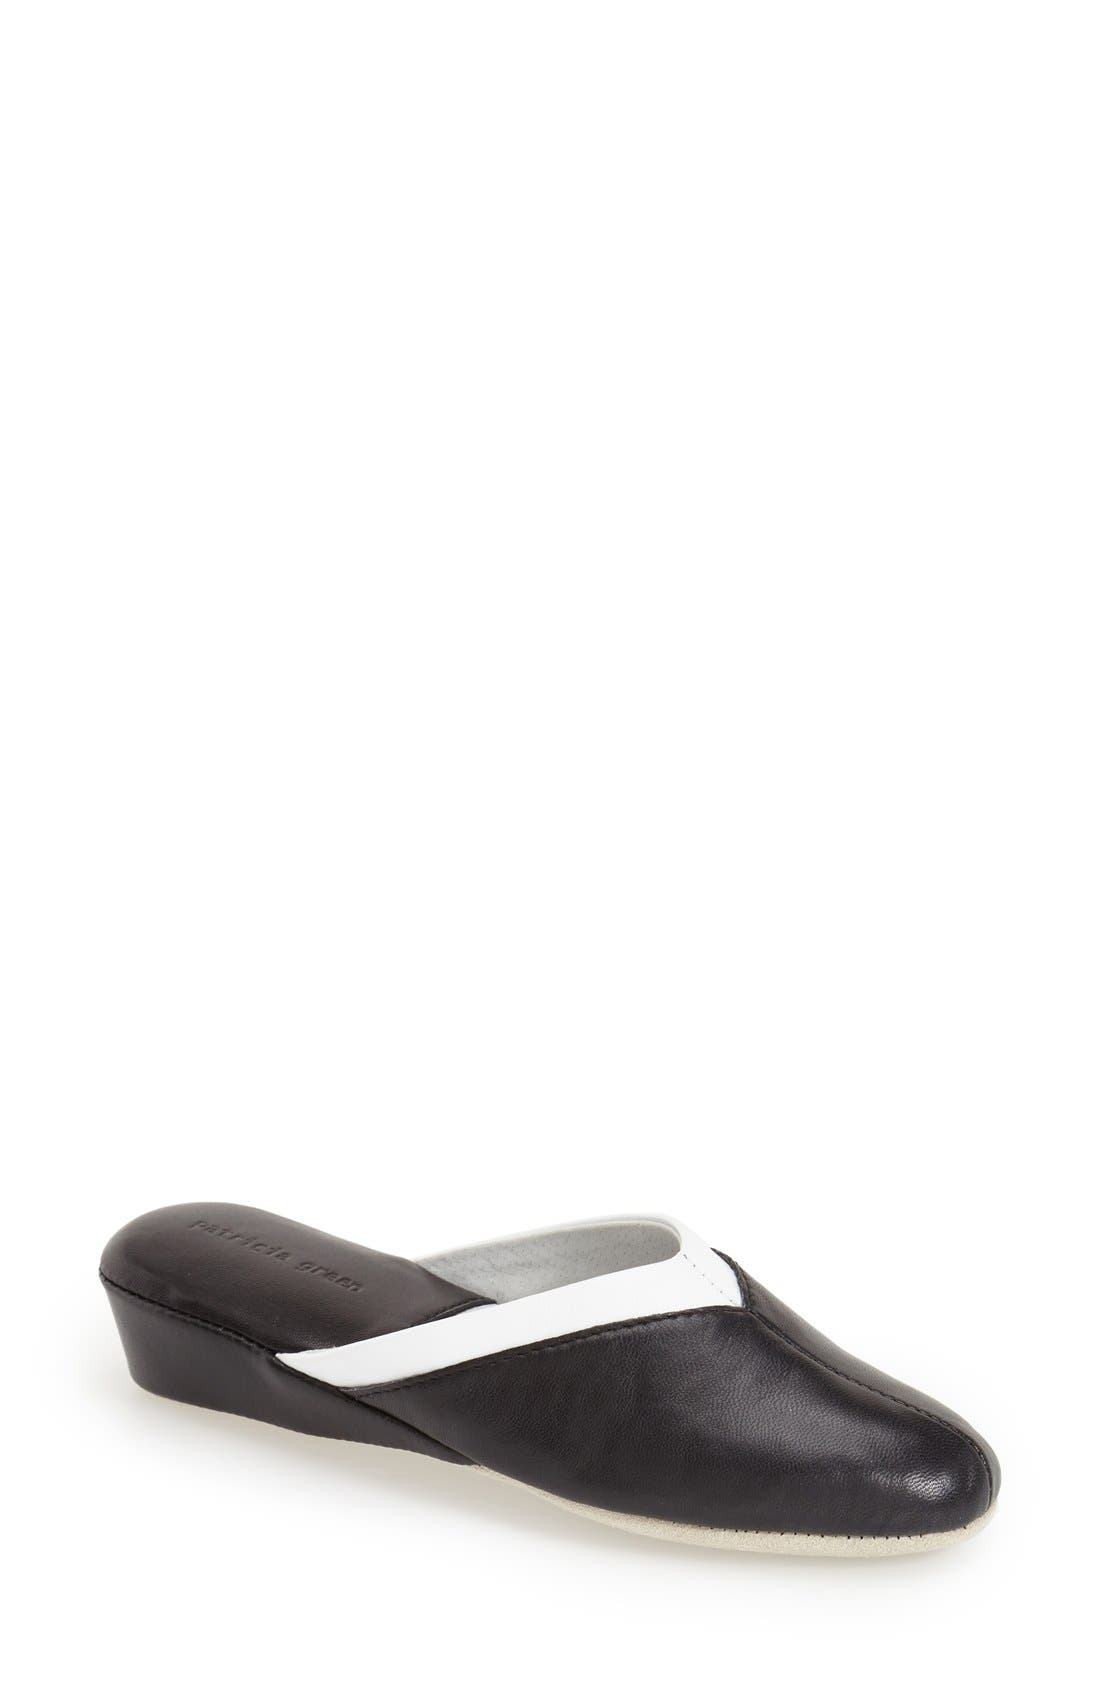 'Valerie' Wedge Mule Slipper,                         Main,                         color, Black Leather